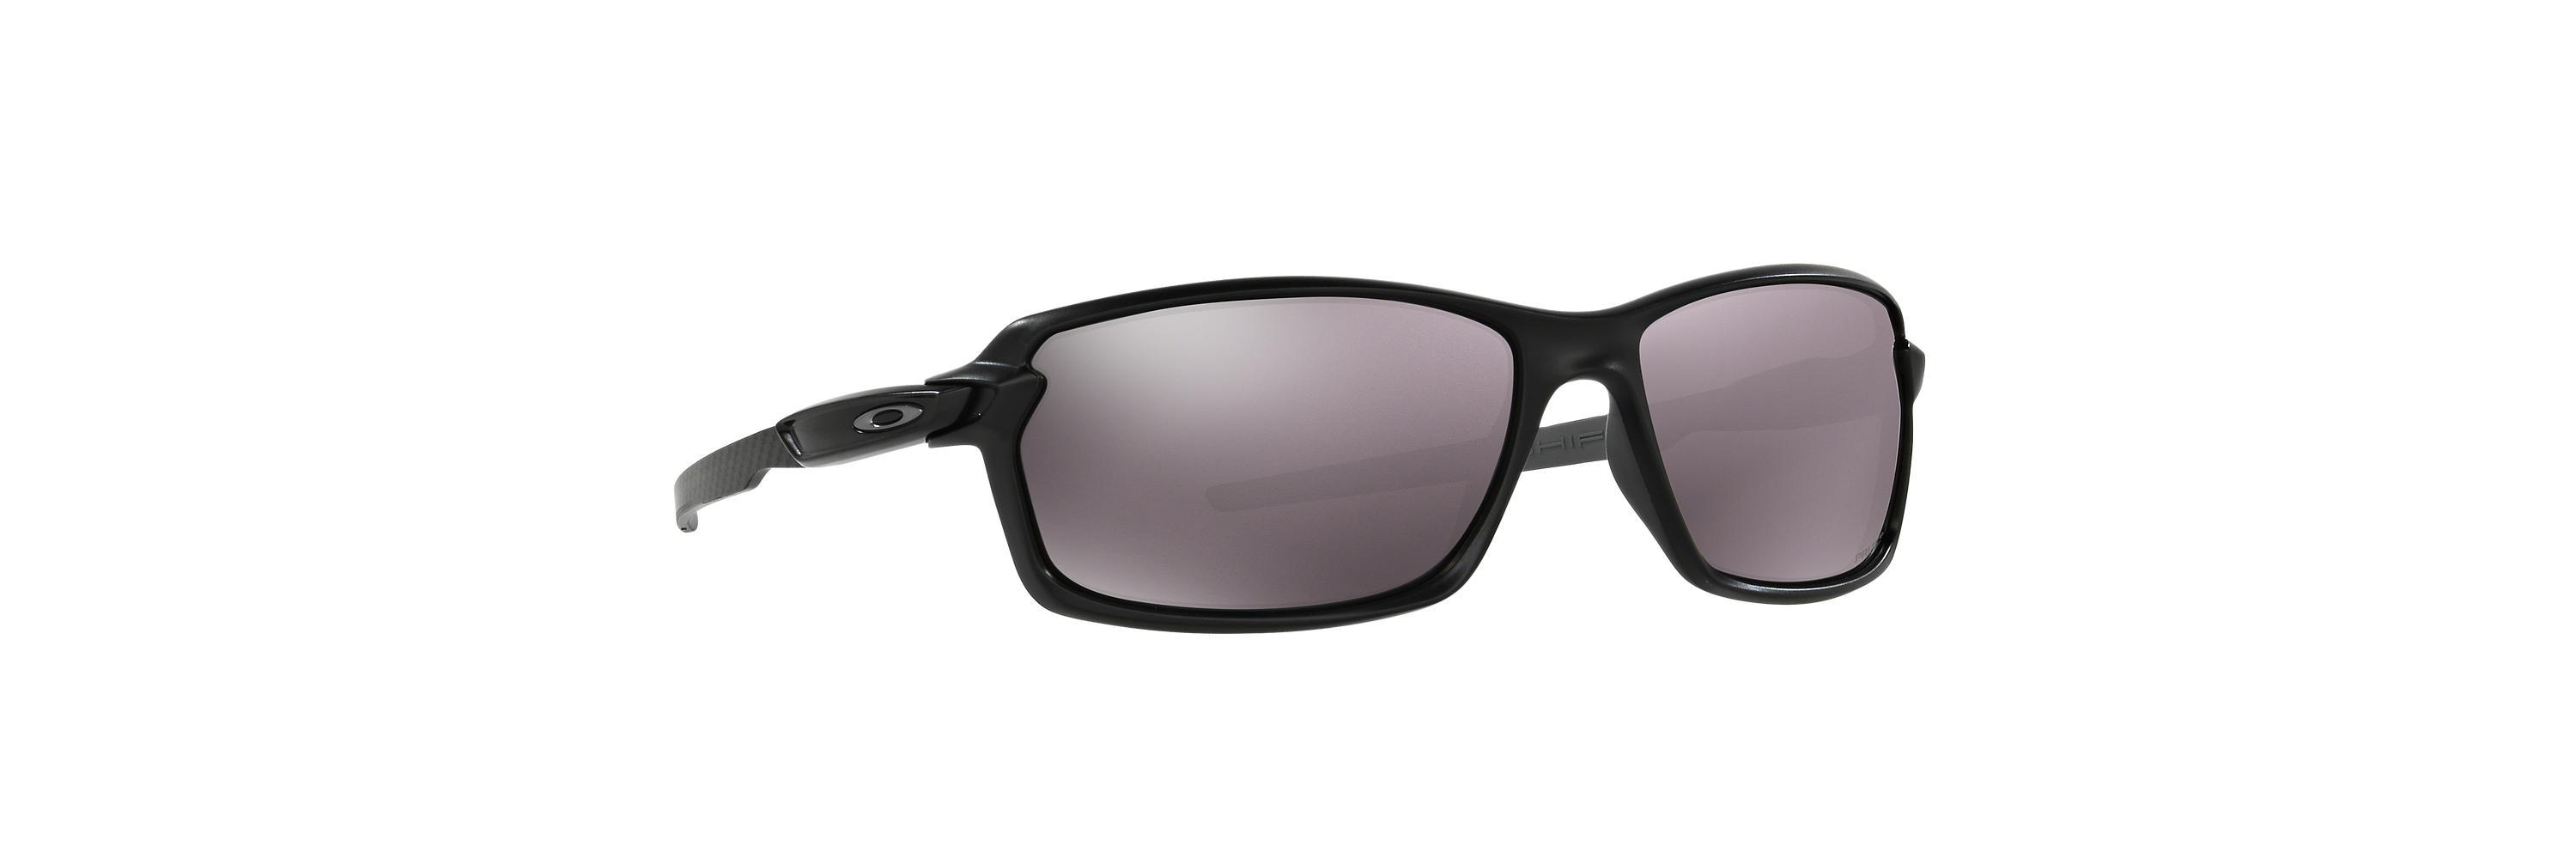 oakley carbon shift sunglass hut